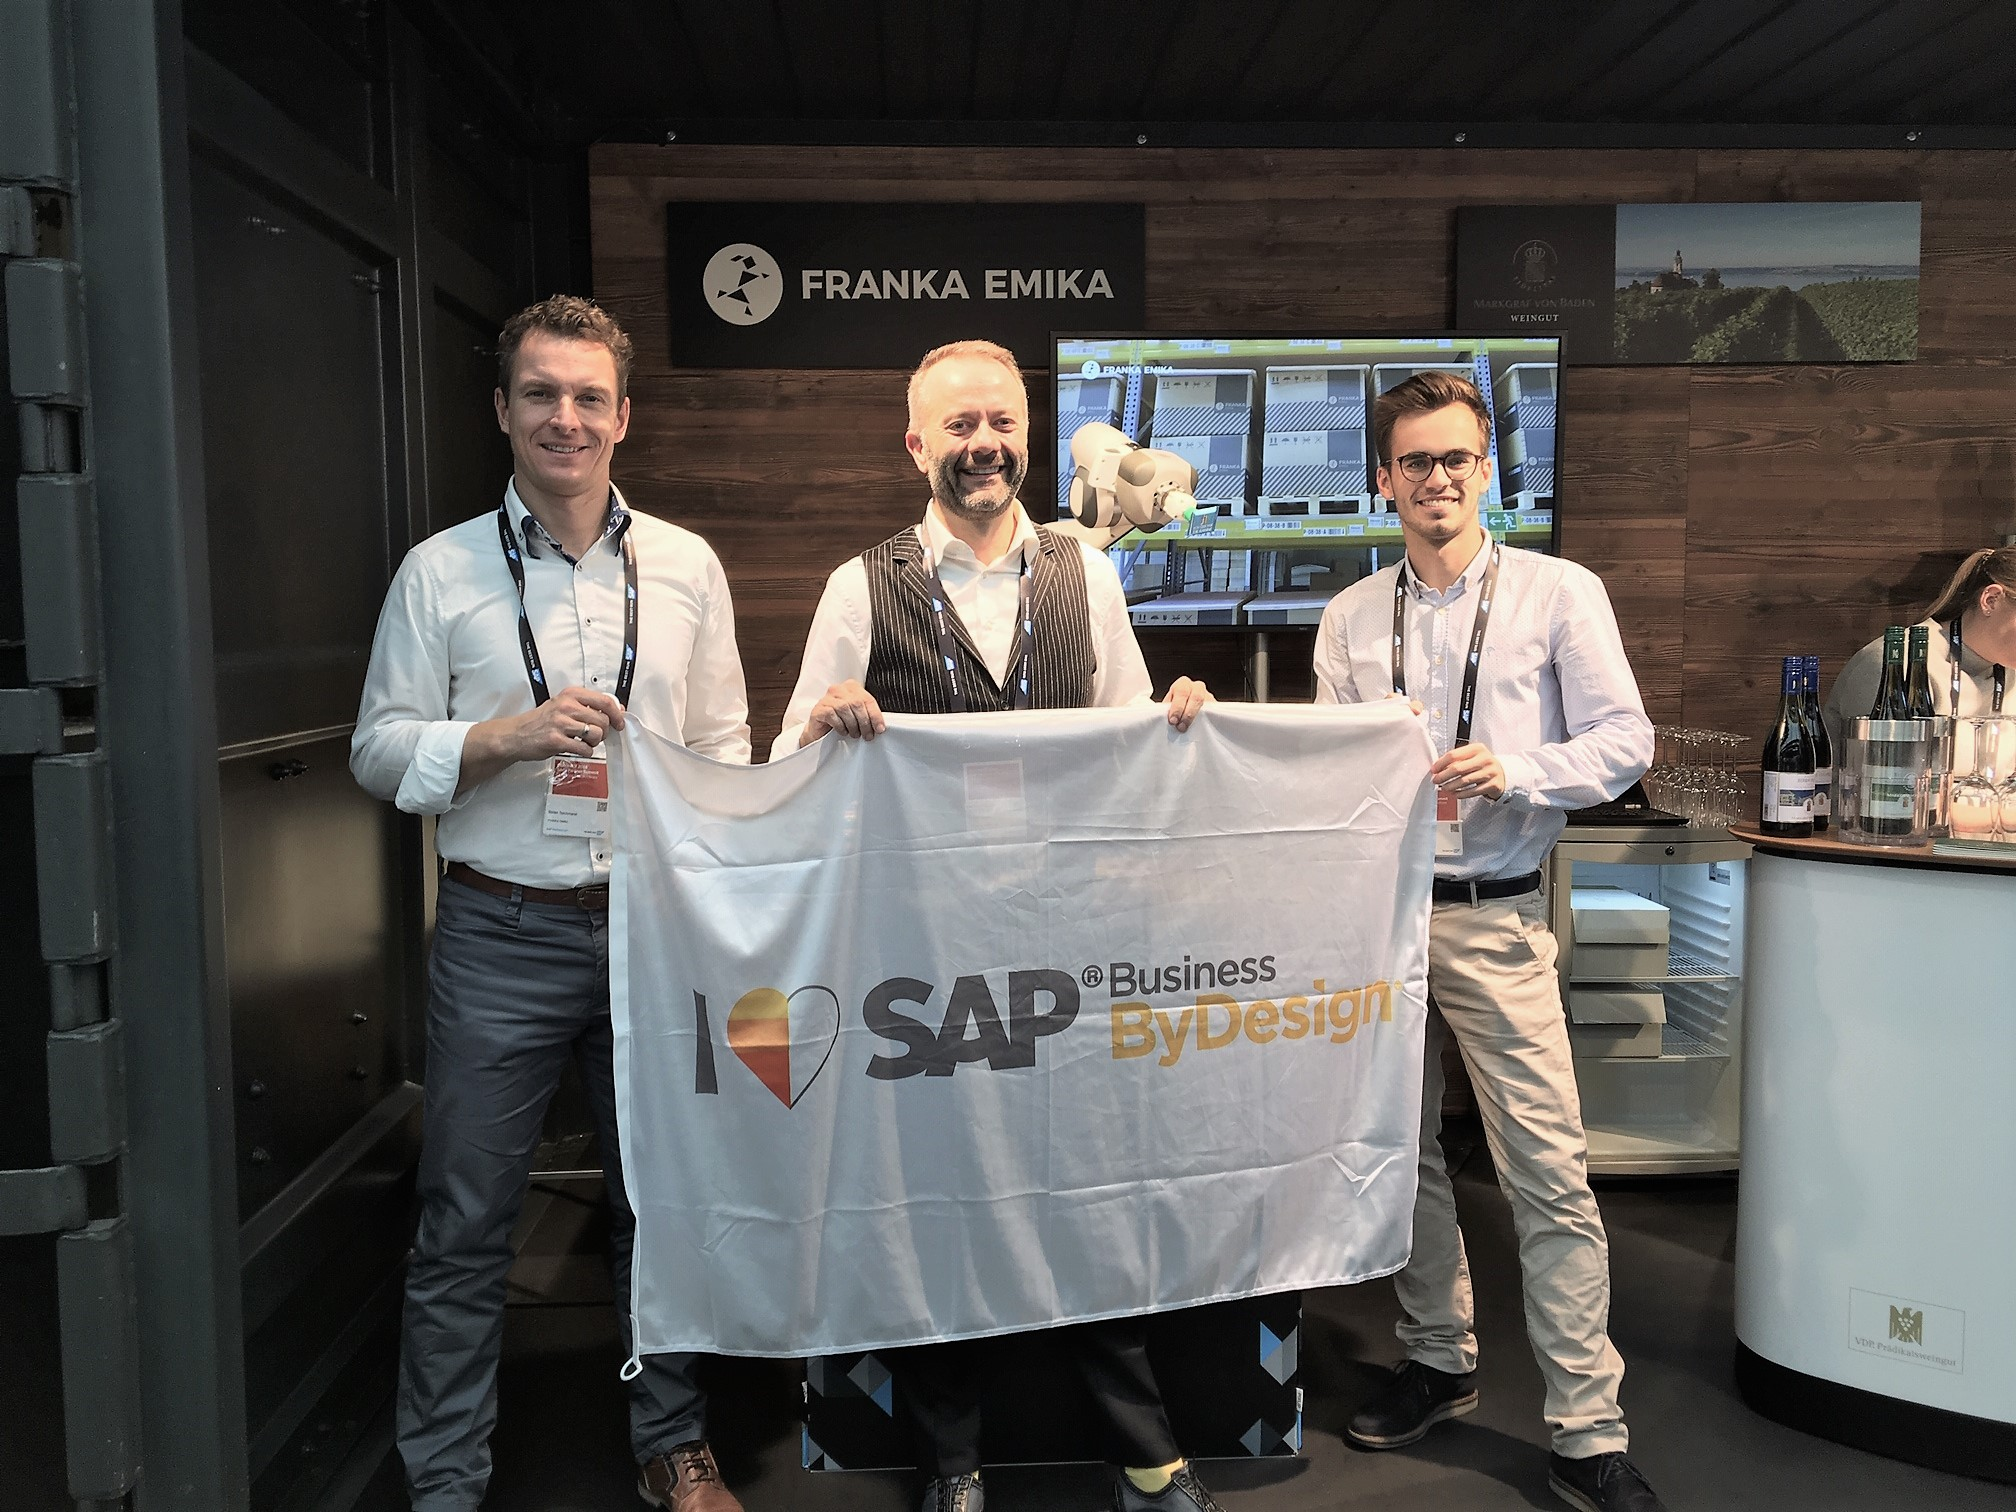 SAP Business ByDesign all4cloud Kunde Franka Emika Cloud ERP Erfolg success story